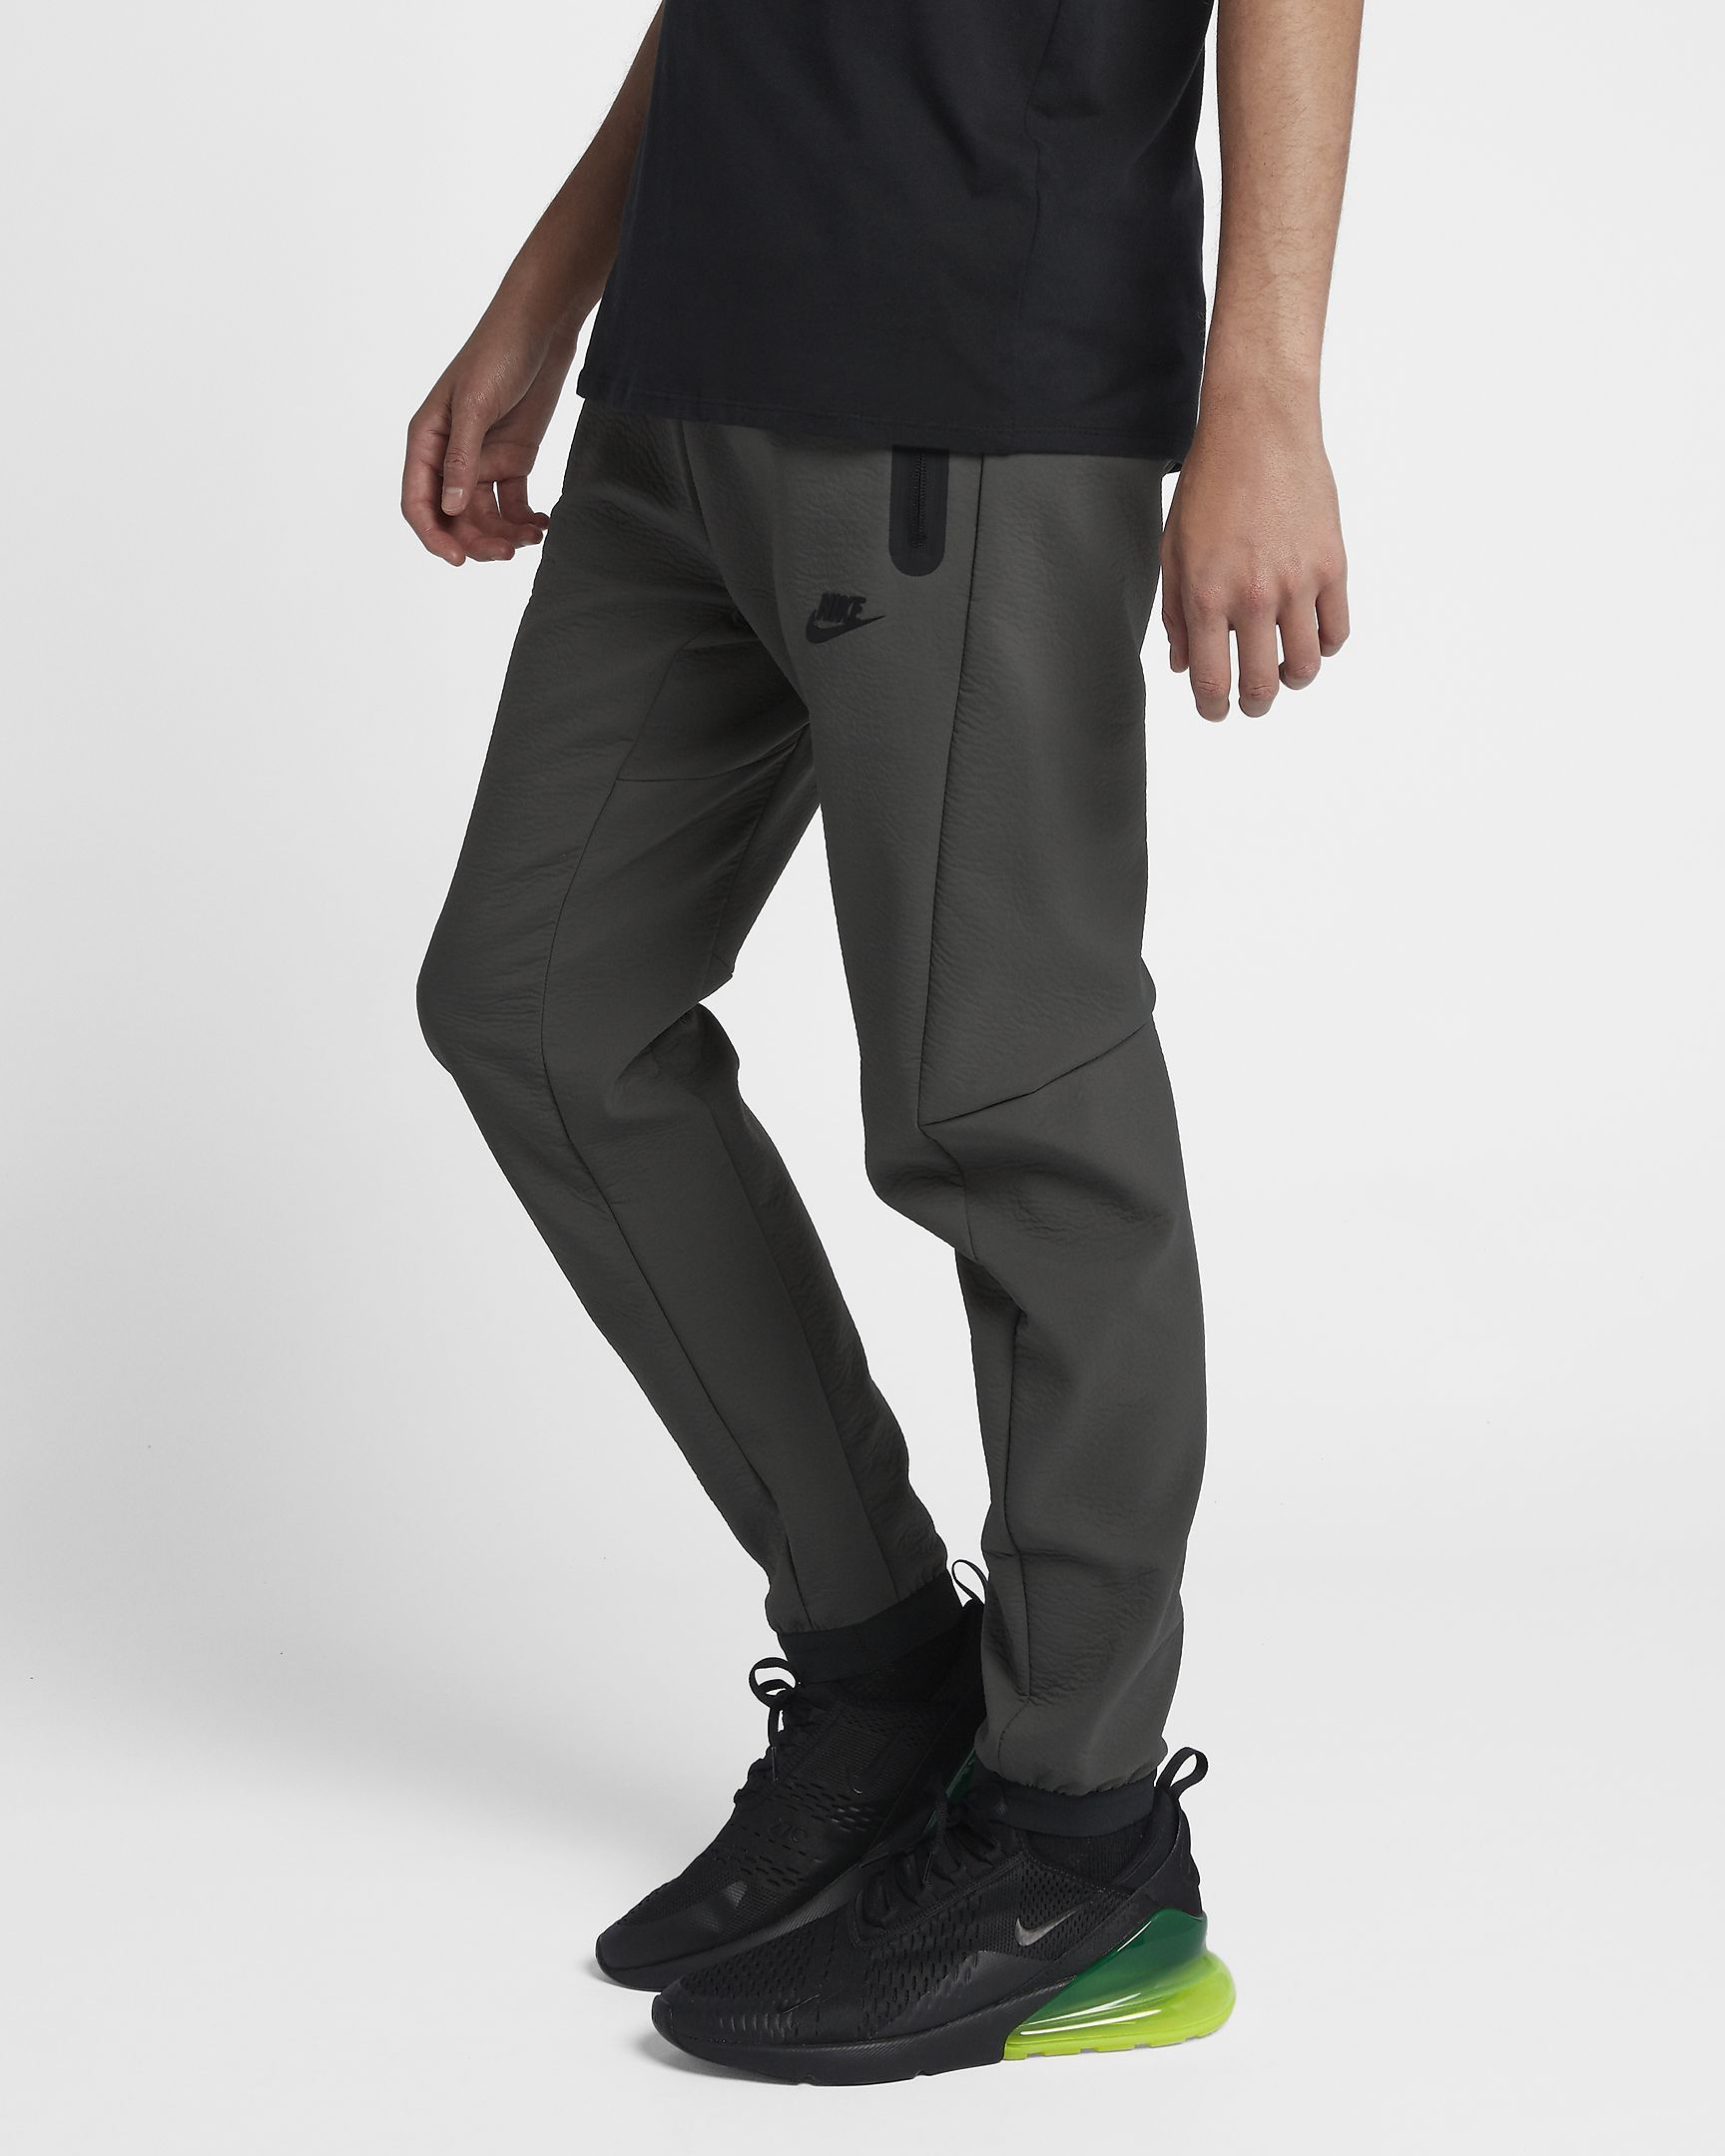 a0da6745a Nike Sportswear Tech Pack Men's Woven Pants | My Style | Tracksuit ...